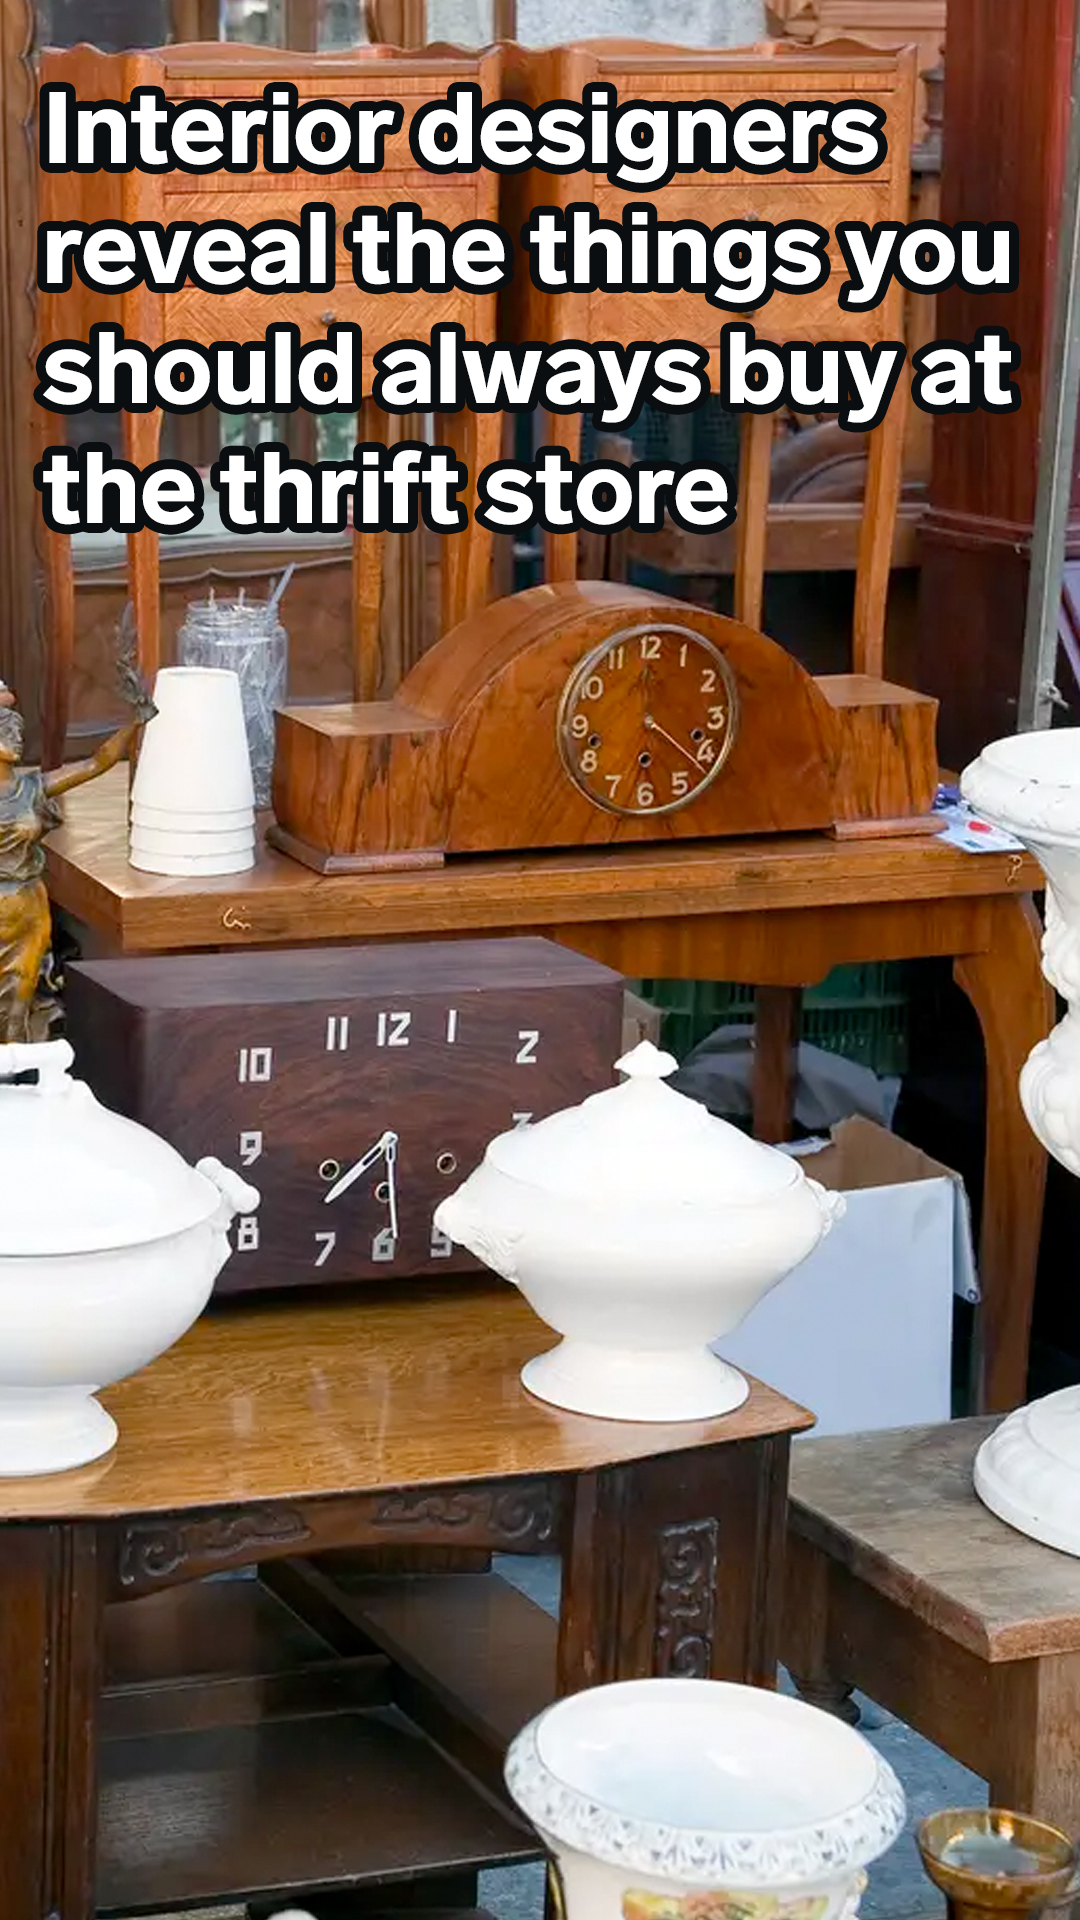 Interior Designers Reveal The 8 Things You Should Always Buy At The Thrift Store Thrifting Diy Home Decor Projects Shop Interior Design